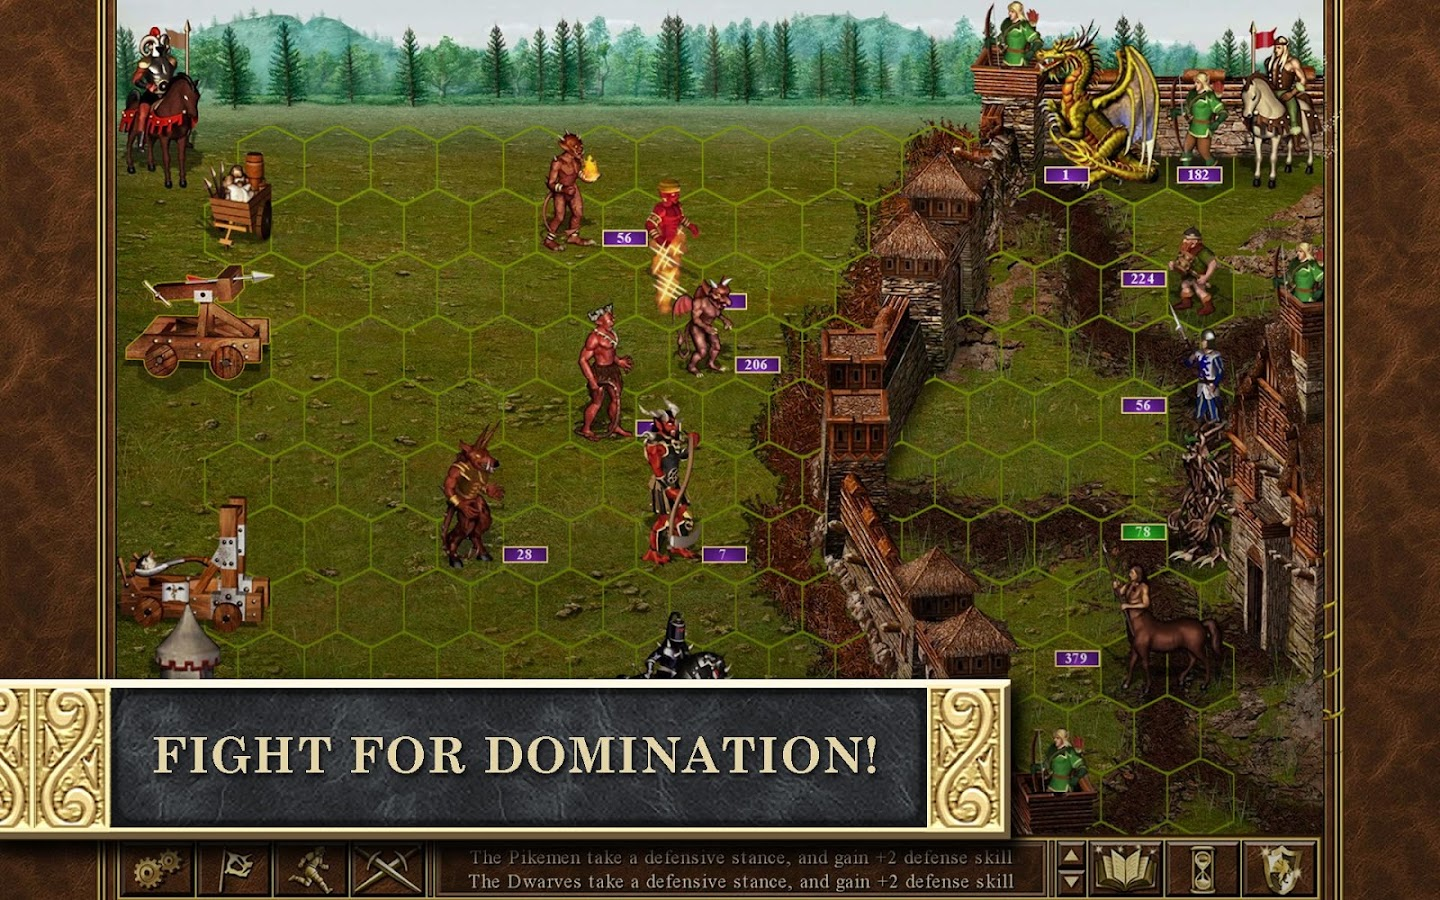 Heroes of Might & Magic III HD Screenshot 16